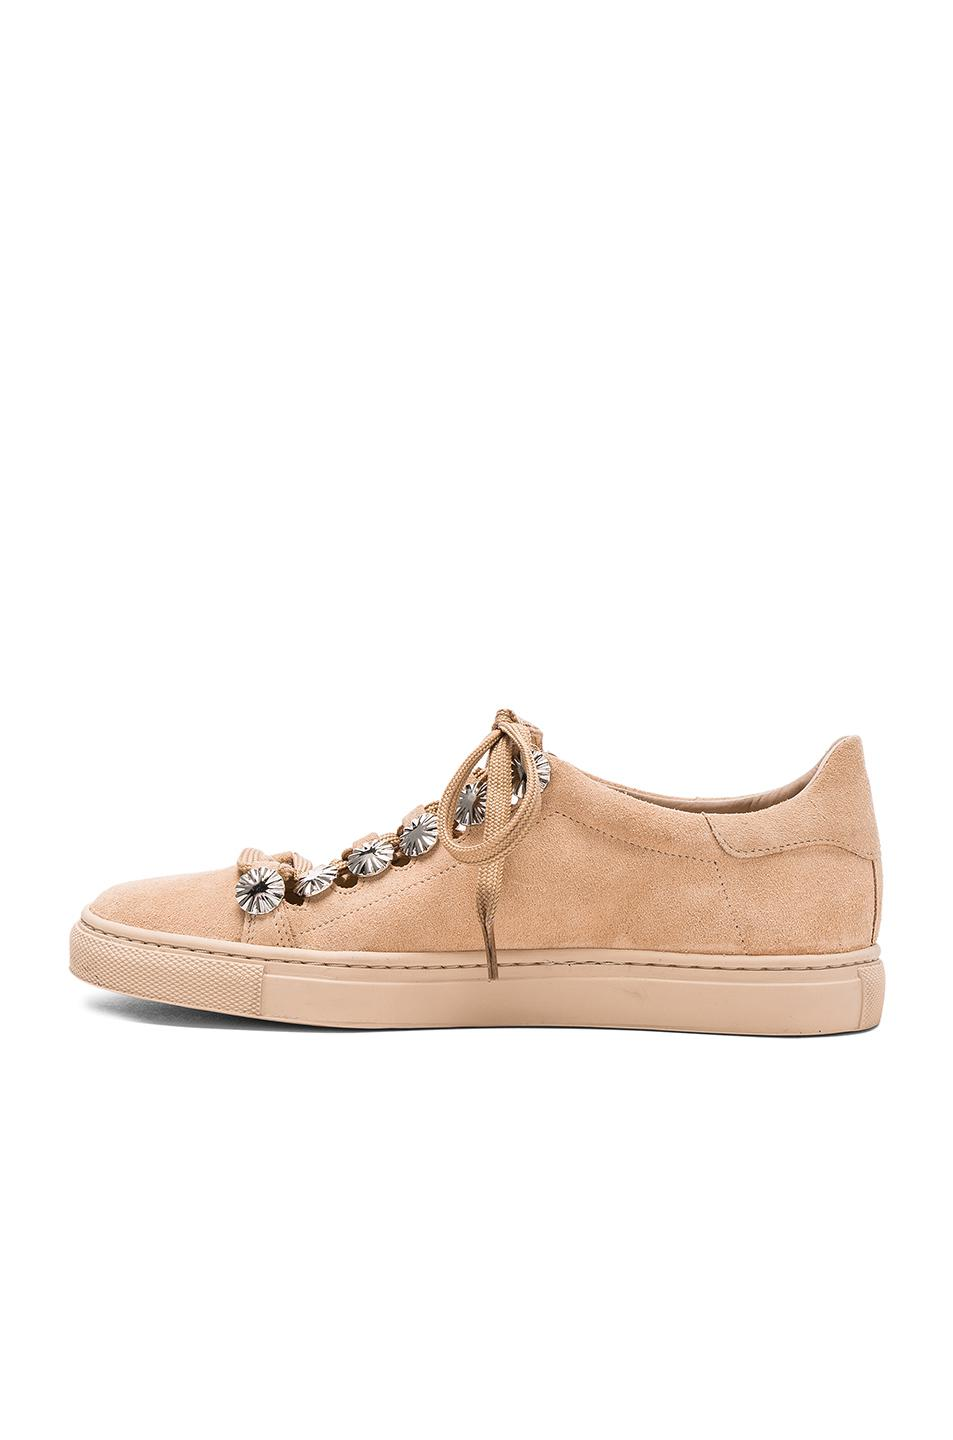 Toga Studded Suede Sneakers